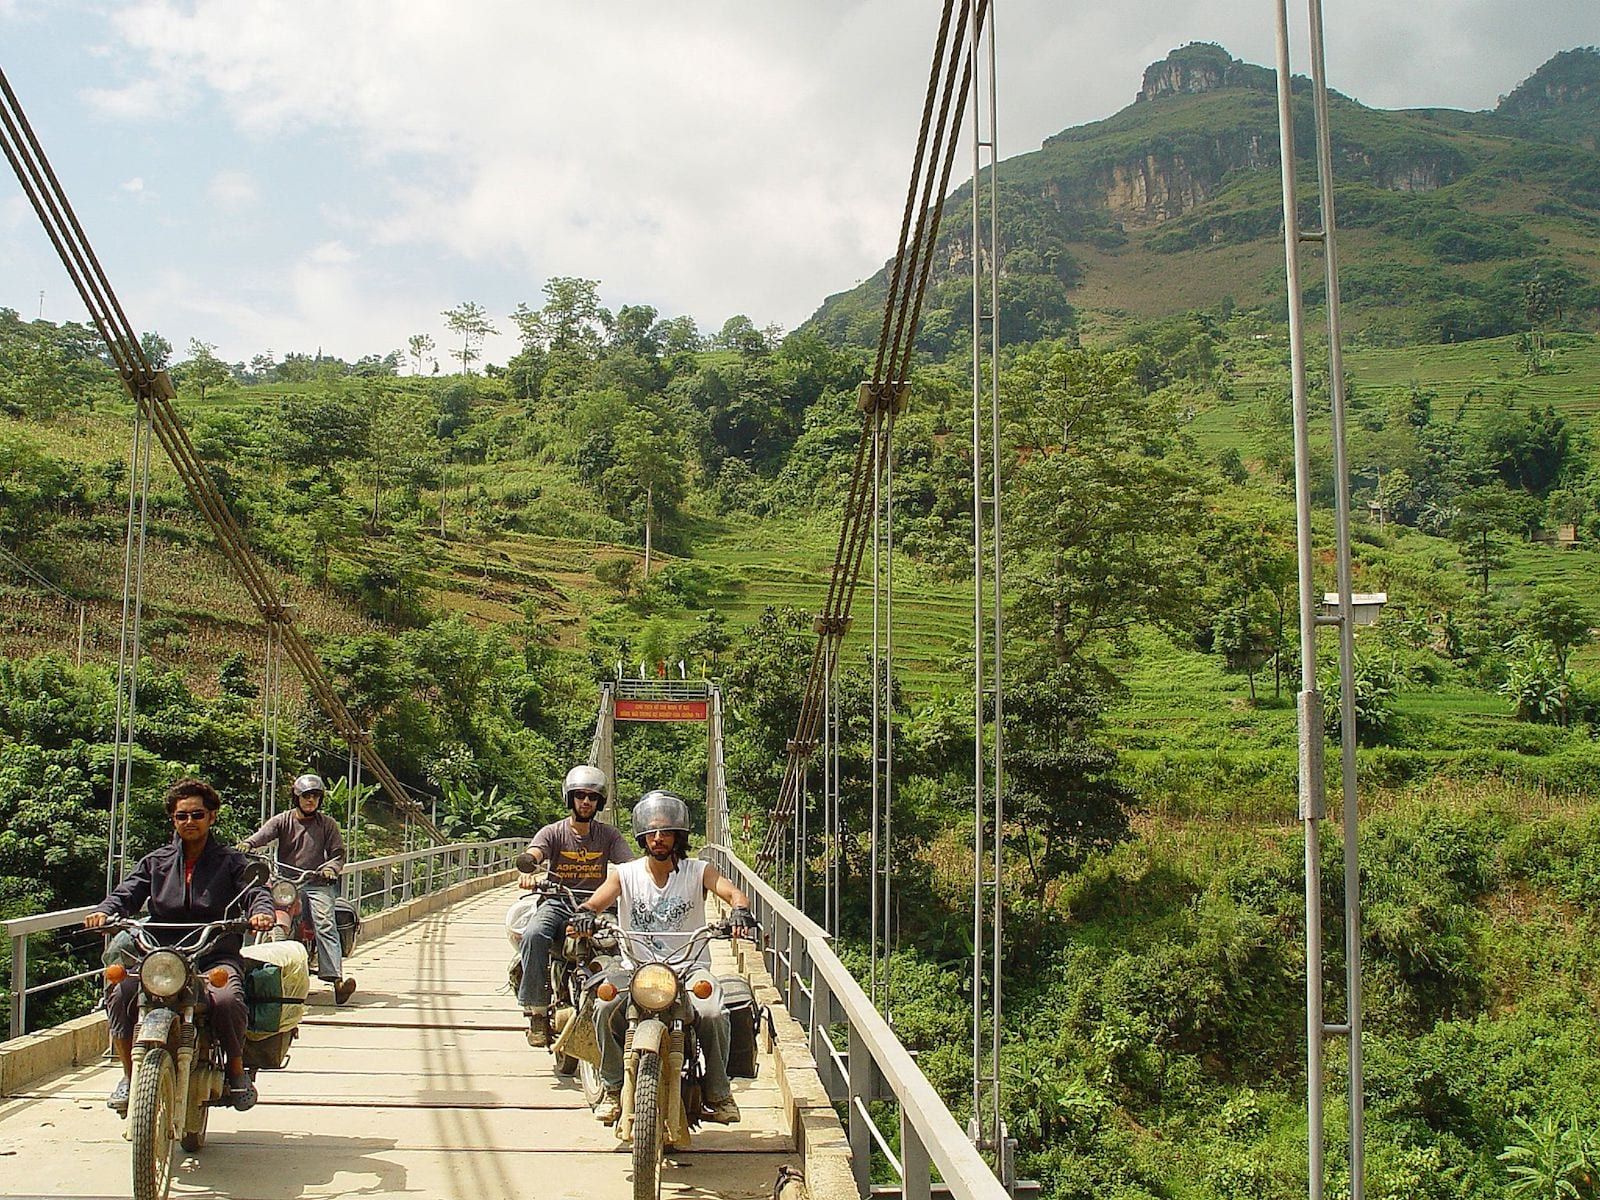 Crossing the Chay river, Ha Giang